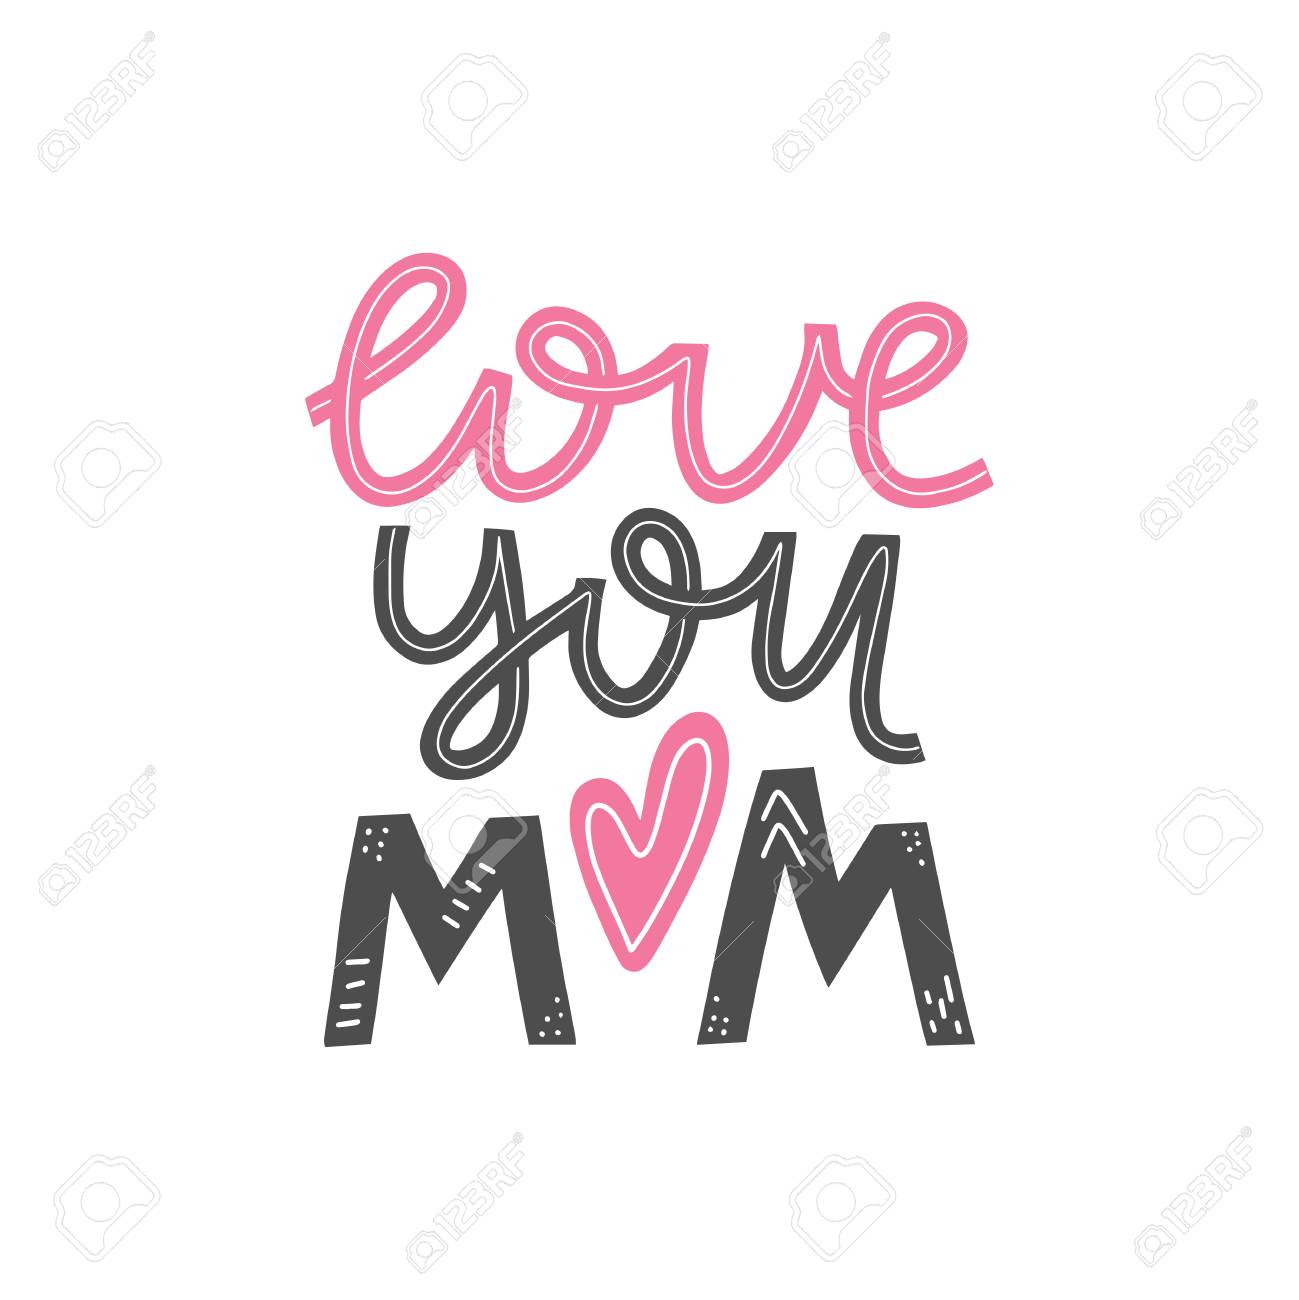 picture regarding Happy Mothers Day Printable Card named Appreciate by yourself mother lettering card. Pleased moms working day greeting card